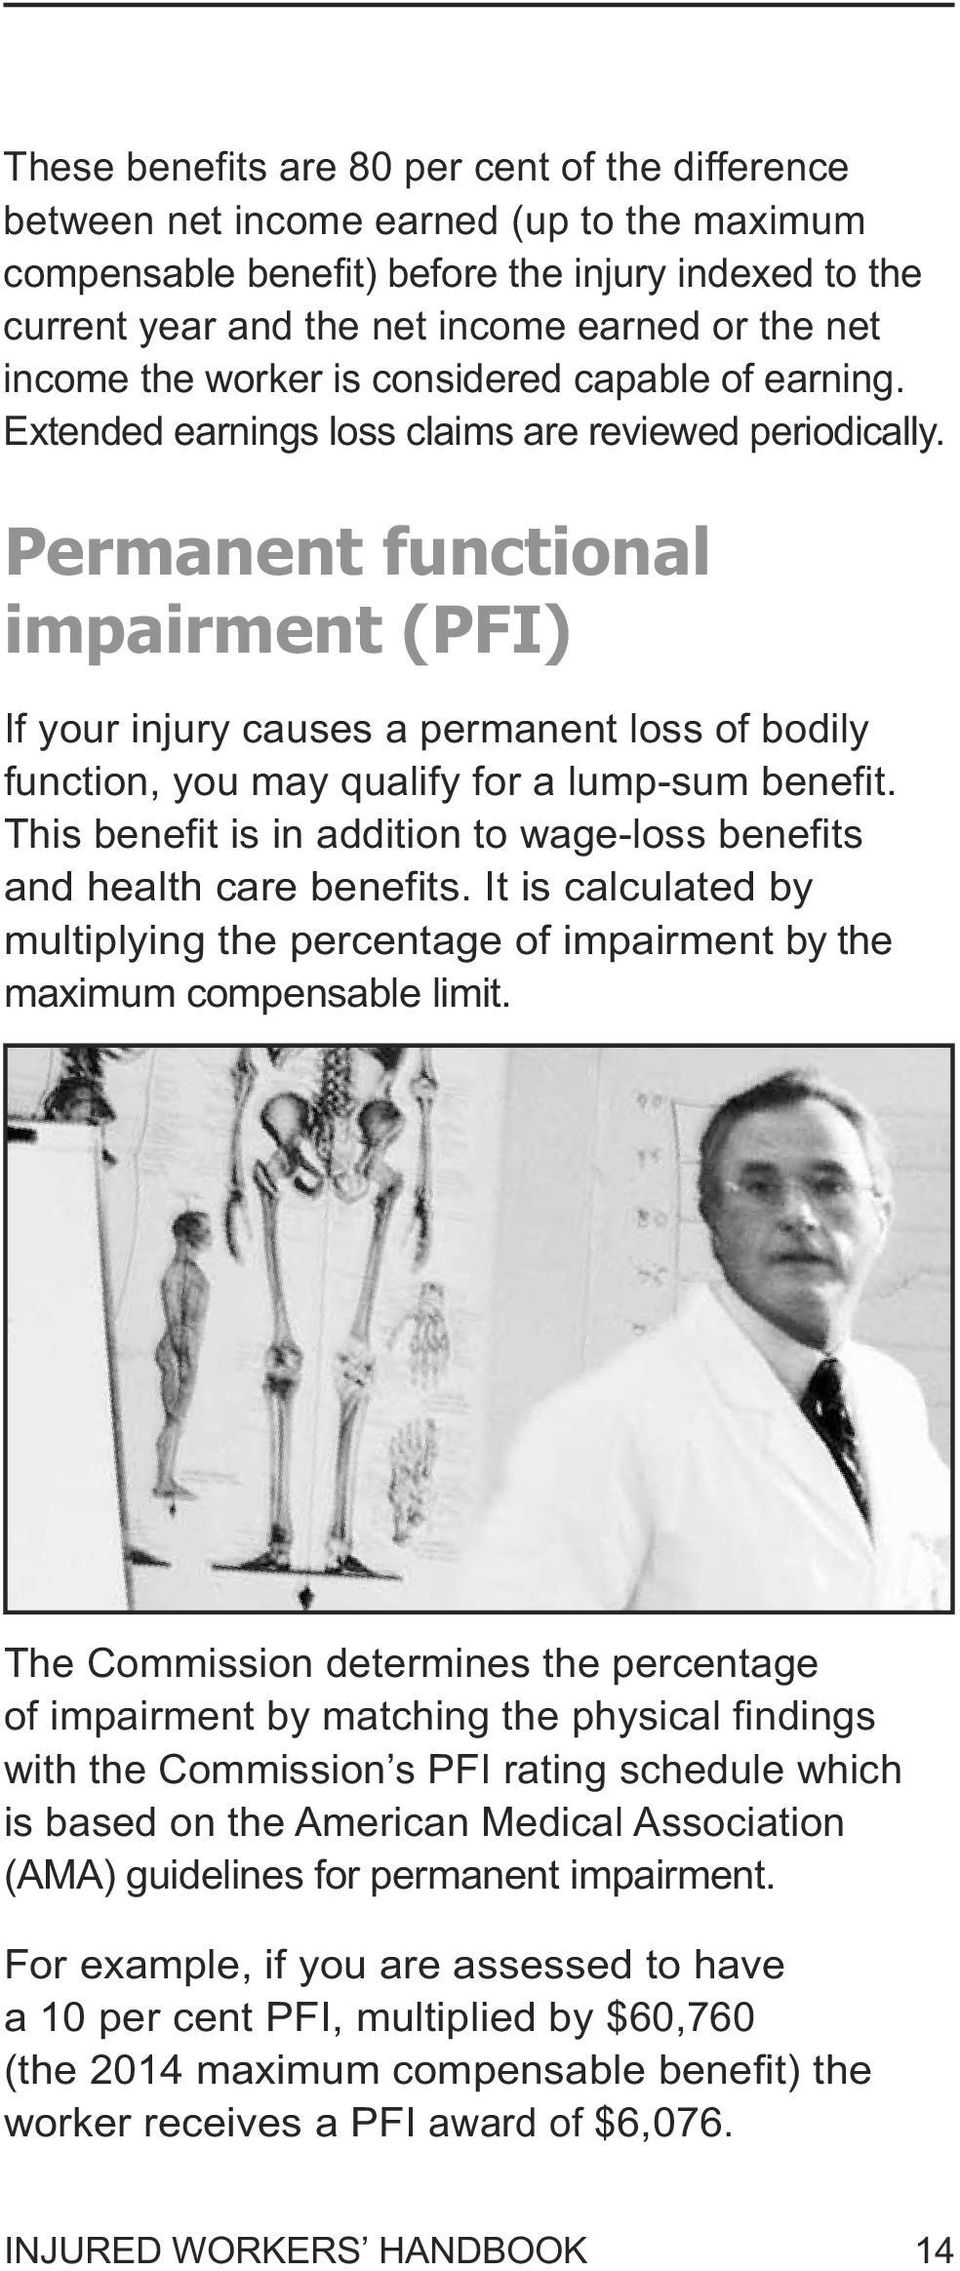 Permanent functional impairment (PFI) If your injury causes a permanent loss of bodily function, you may qualify for a lump-sum benefit.